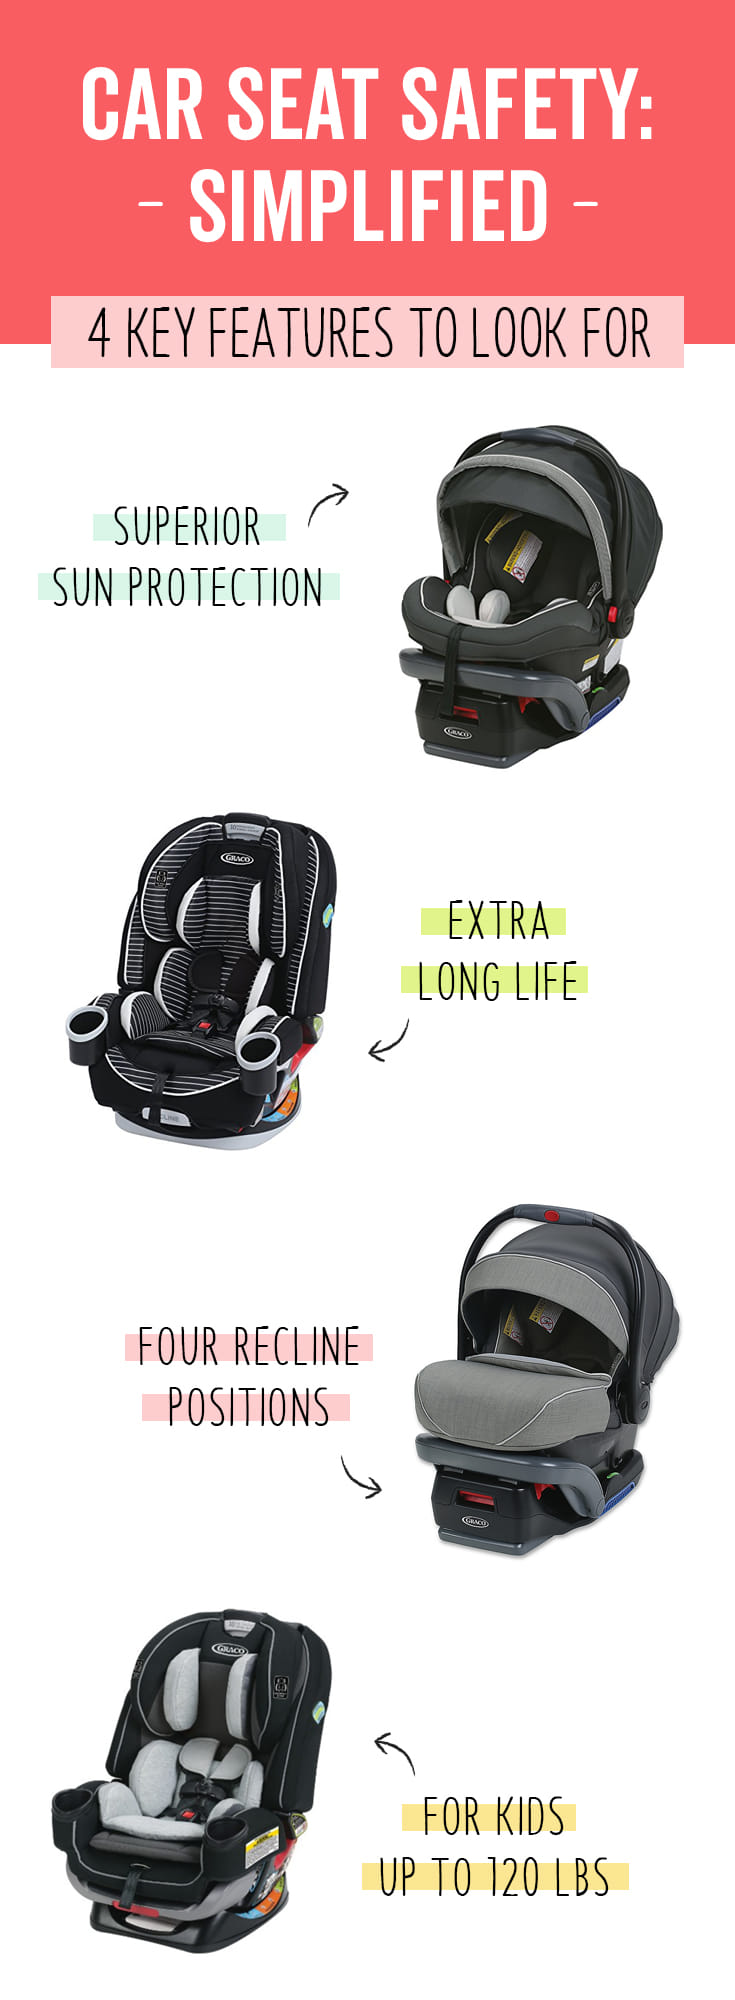 Here's what you need you need to know about safety and installation when choosing a car seat.